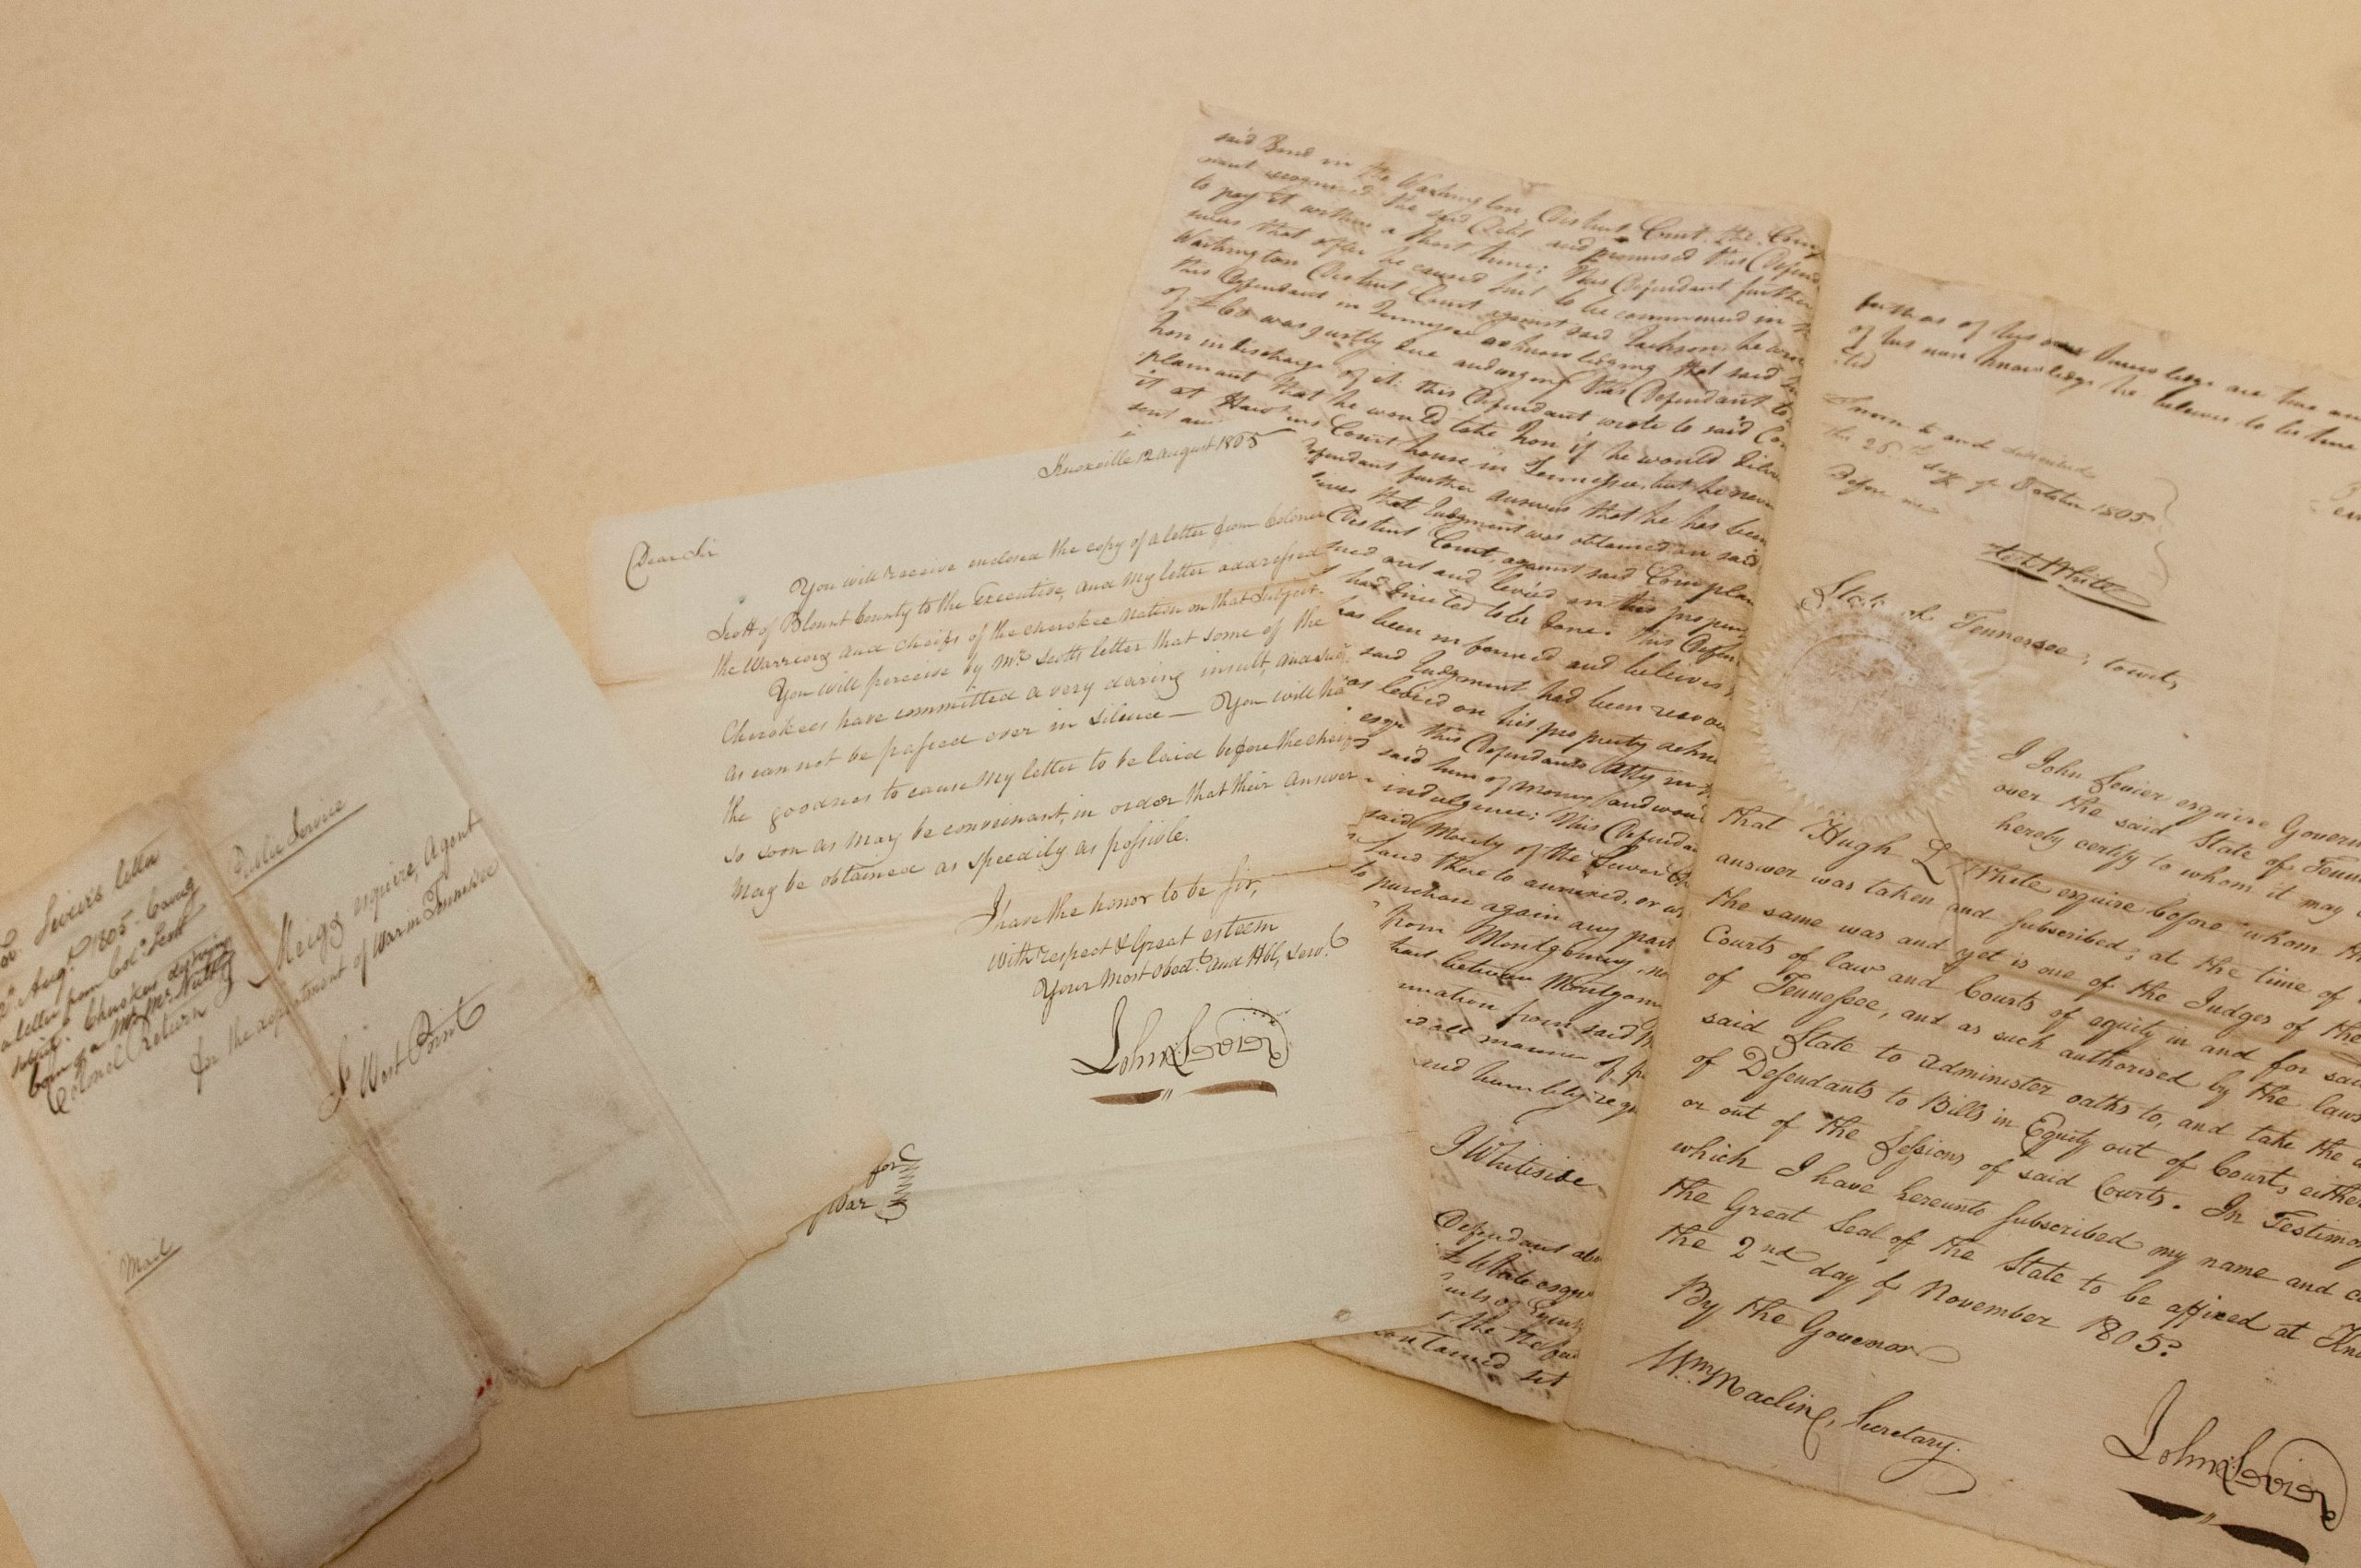 Letter from Governor John Sevier to Colonel Return Jonathan Meigs